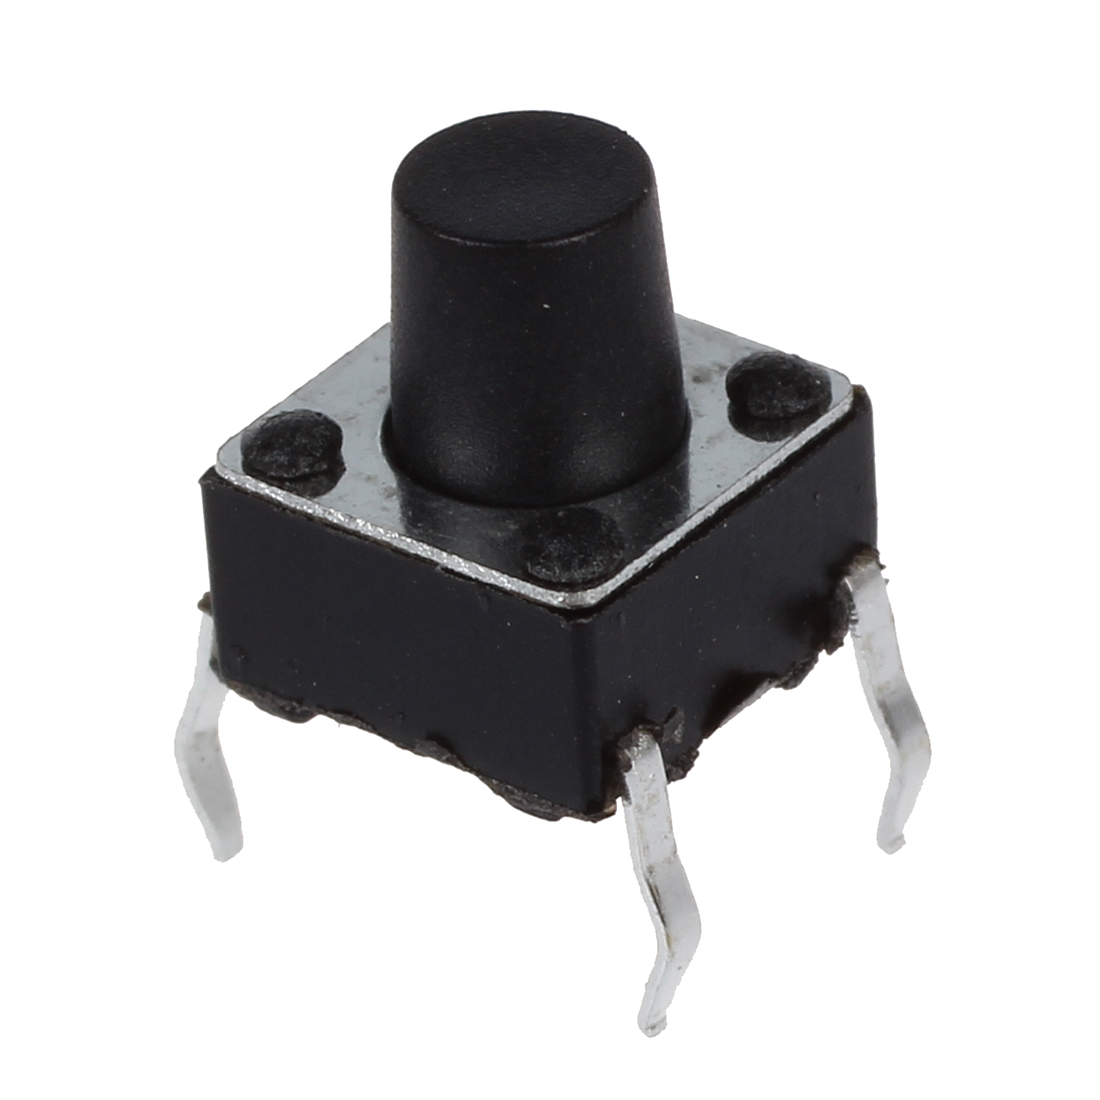 100pcs Tactile Push Button Switch Momentary Tact 6x6x7mm Dip Through-hole 4pin Lighting Accessories Lights & Lighting